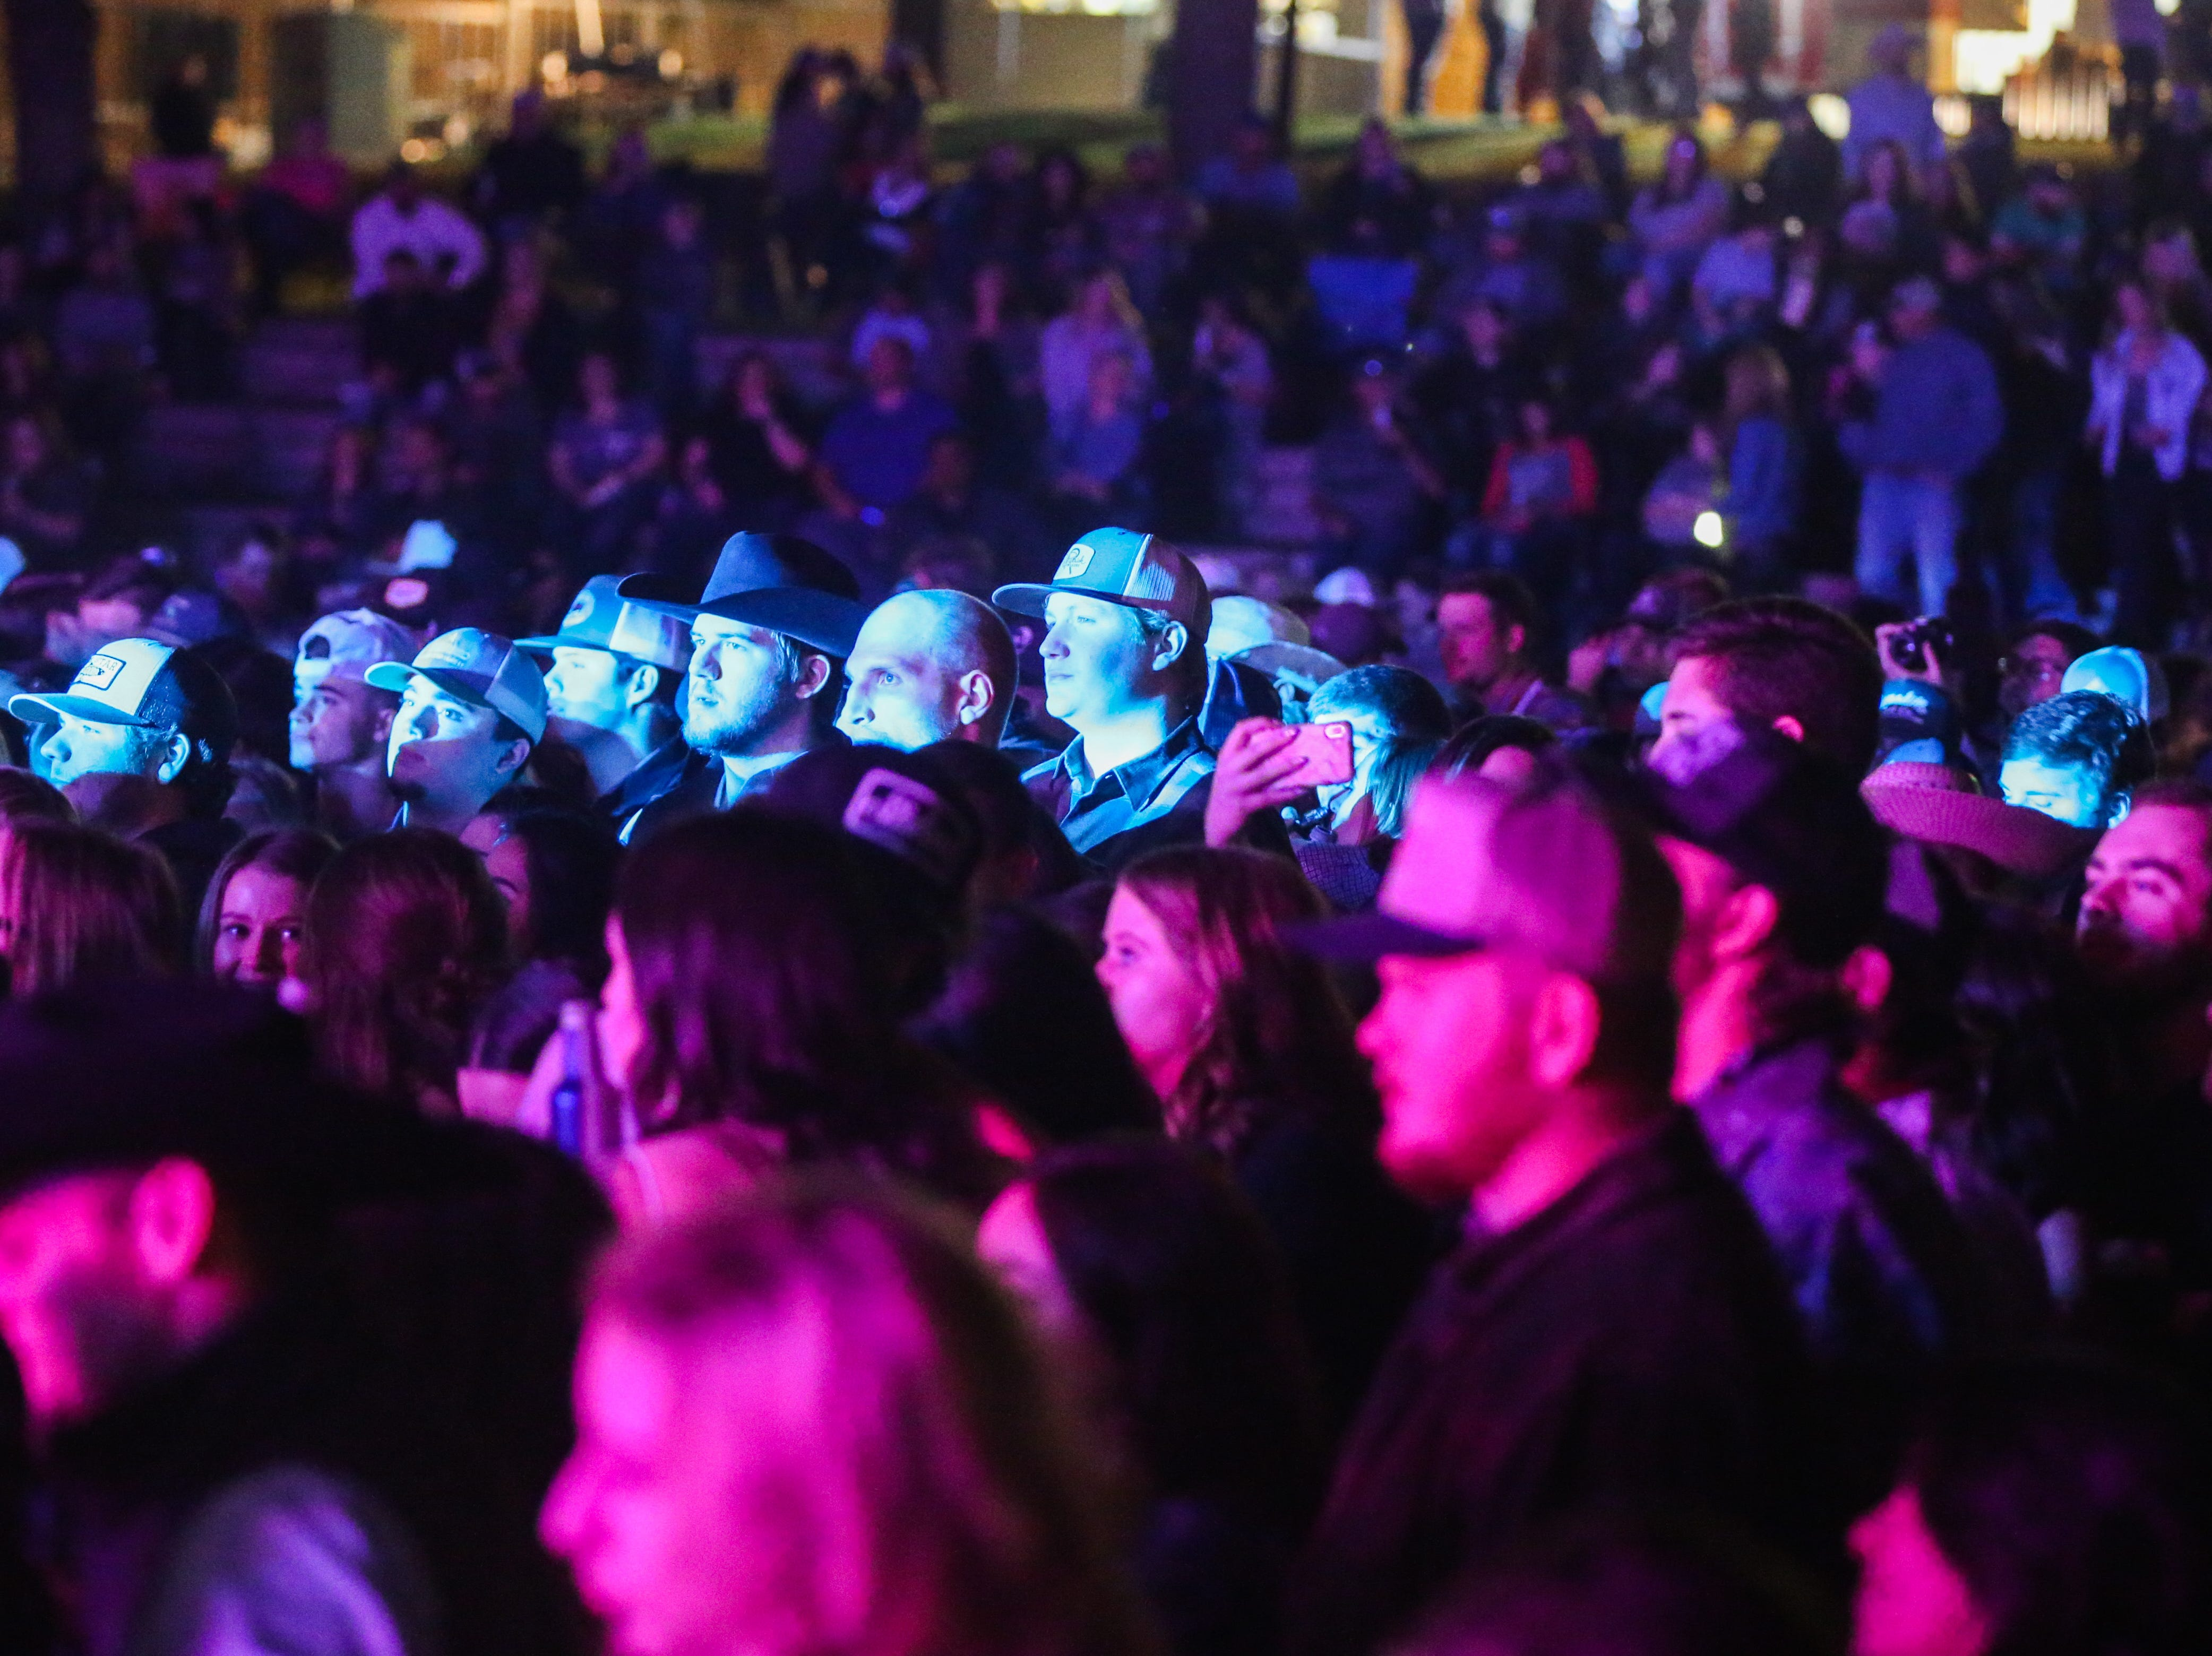 Fans listen to Flatland Cavalry perform during Wild West Fest Friday, March 1, 2019, at the Bill Aylor Sr. Memorial RiverStage.